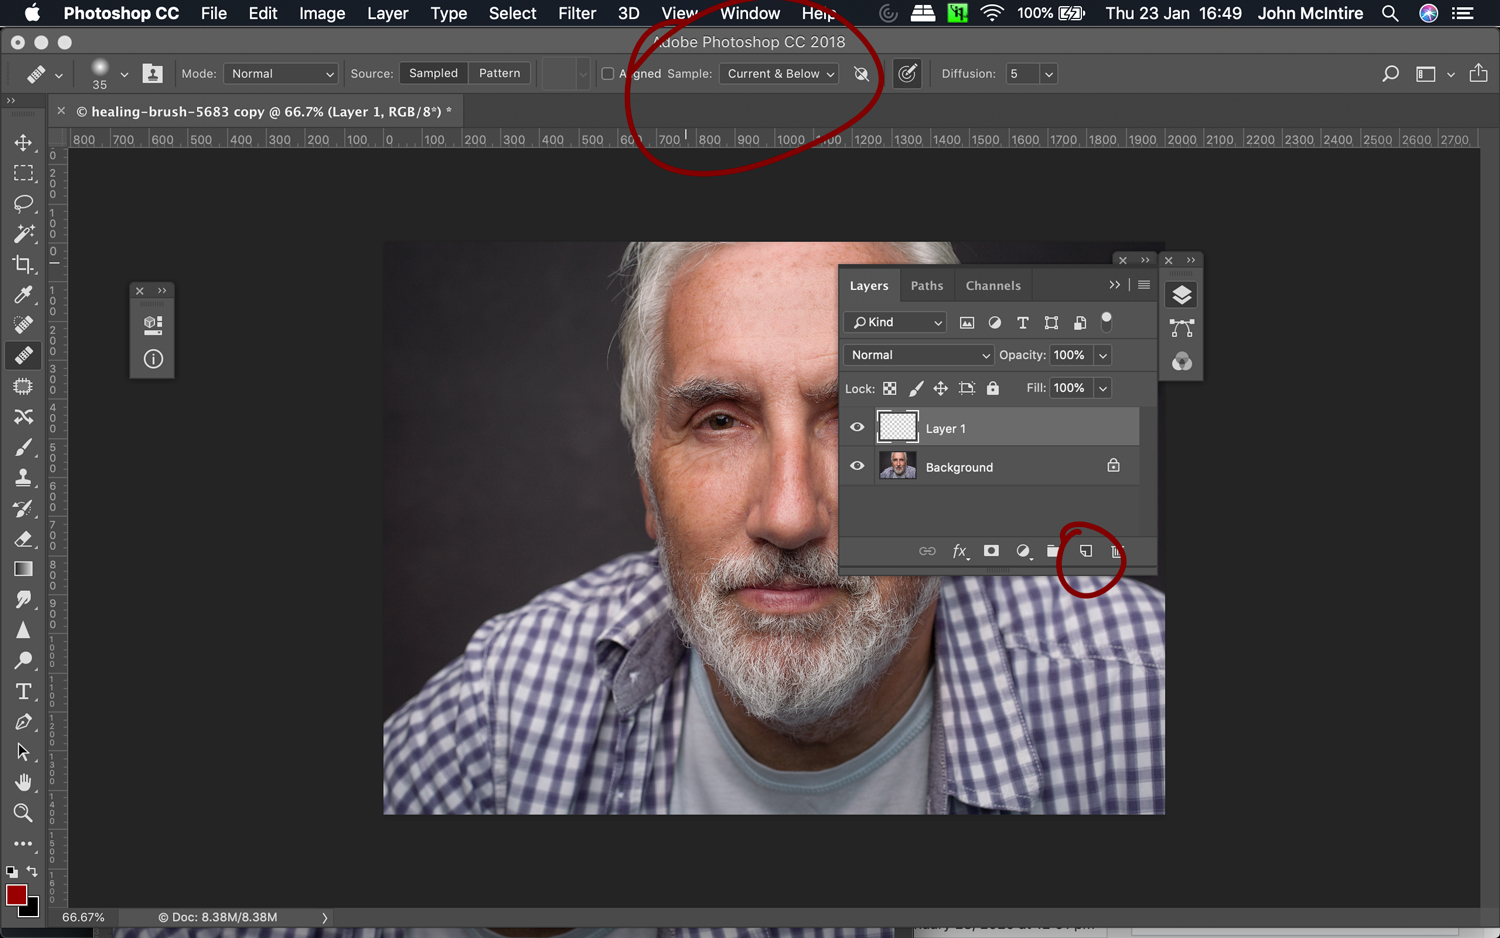 Using the healing brush for retouching skin in Photoshop.